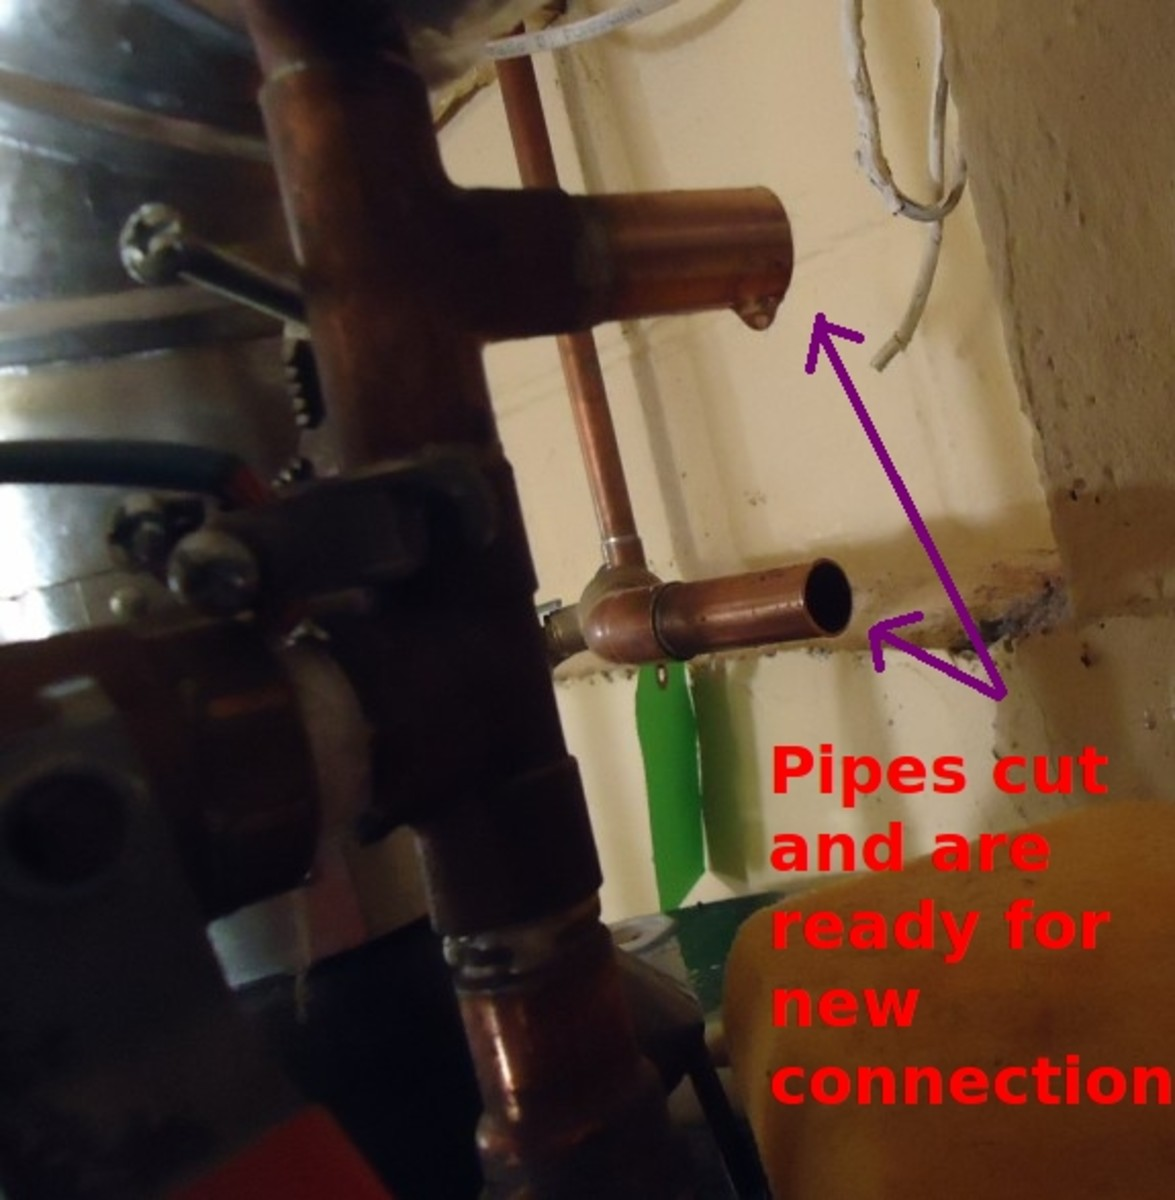 Prep the ends of the pipes for the whole-house purifier's plumbing connections.